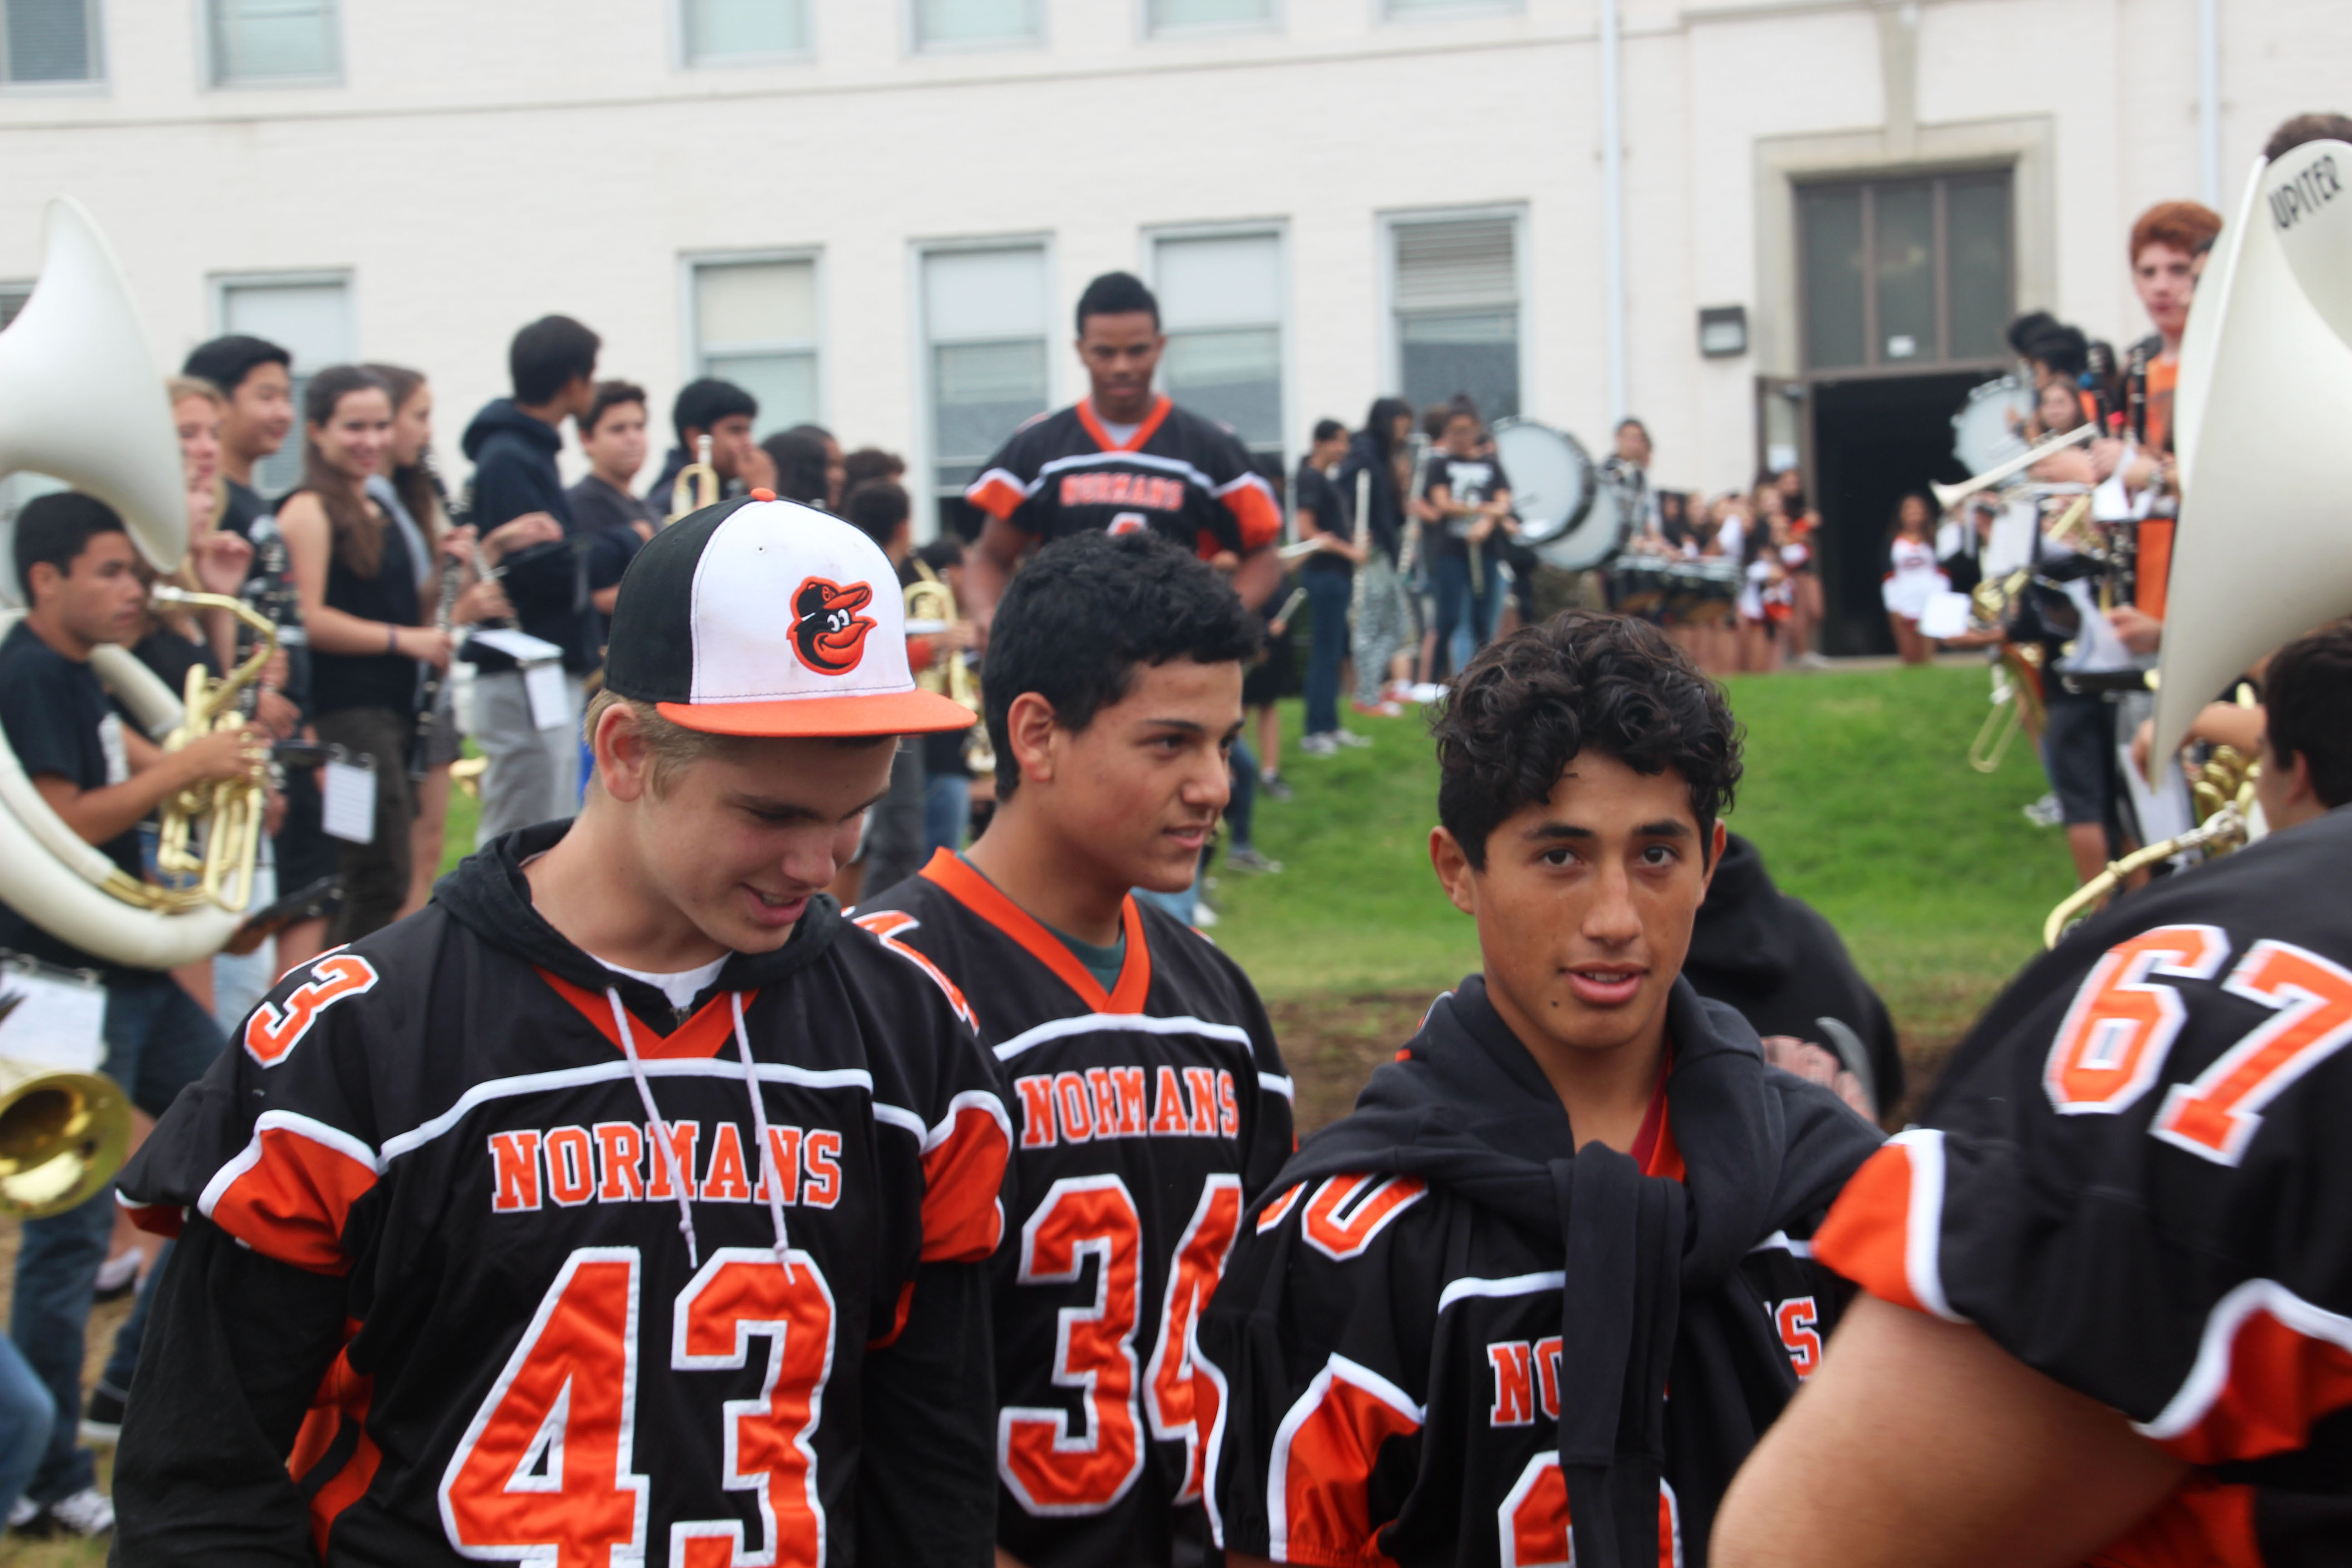 The frosh-soph football team participates in the pep rally for their game against the San Gabriel Matadors.